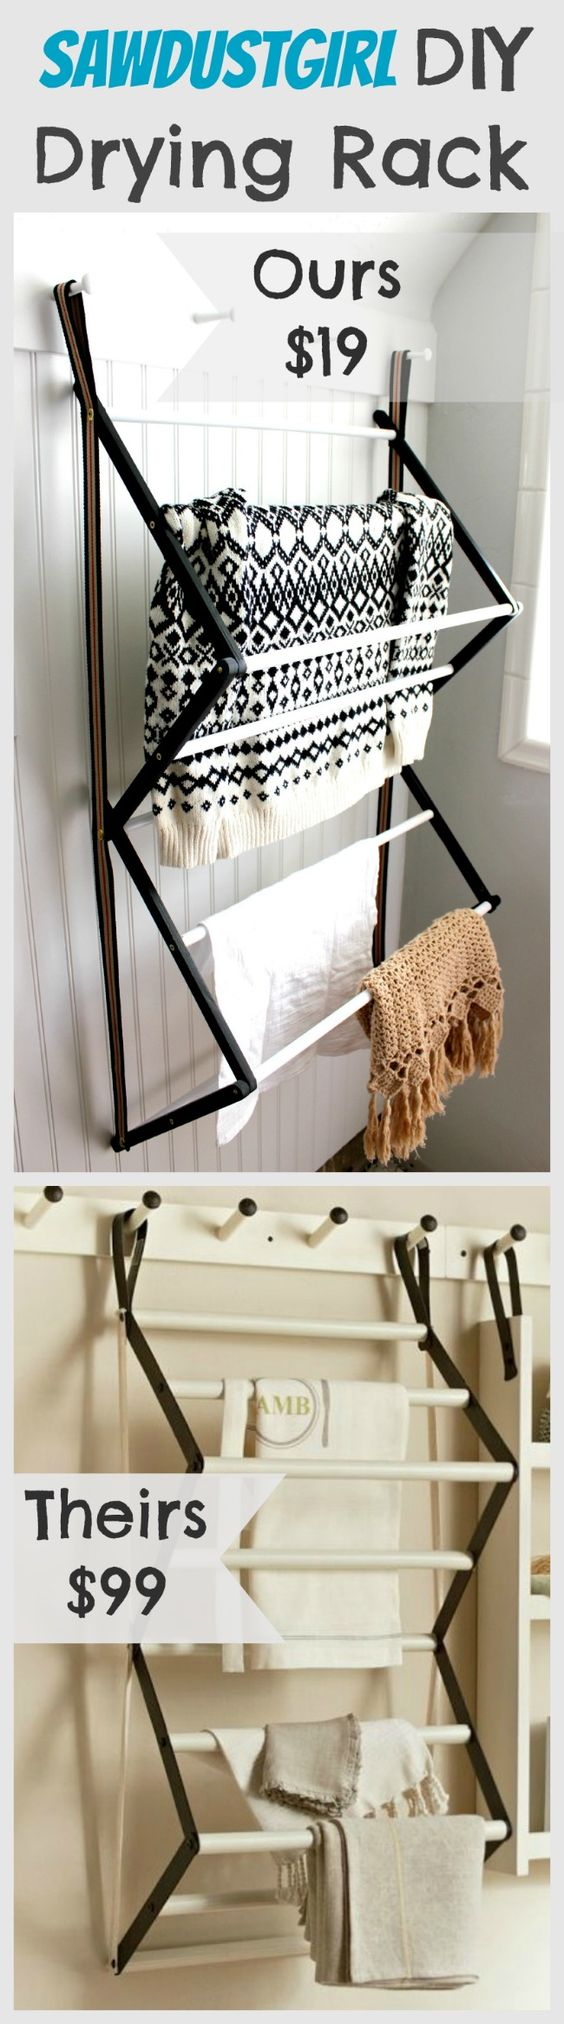 Hanging drying rack sawdust girl laundry and barn